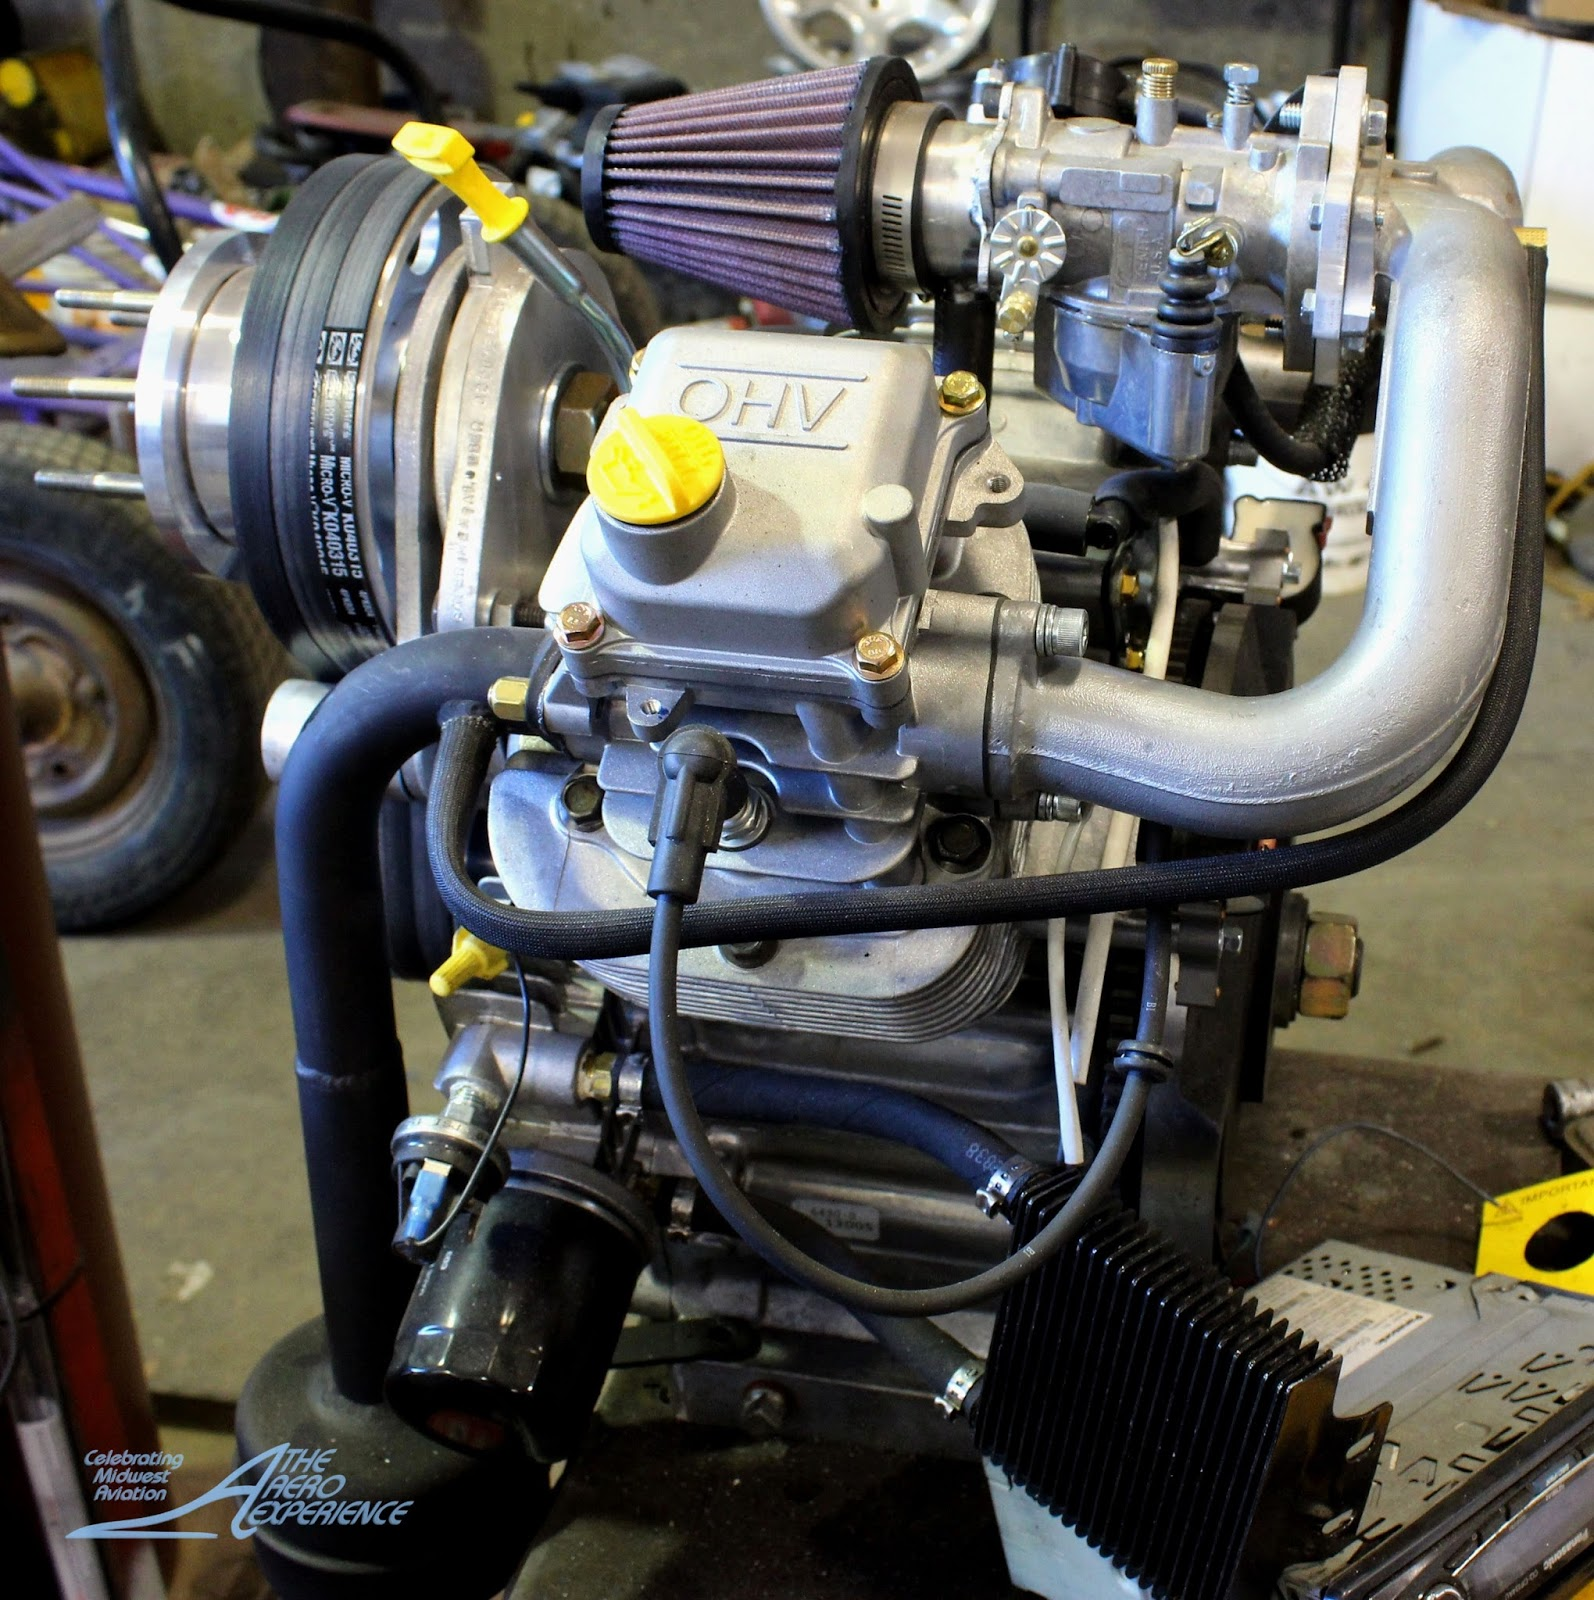 Vw 1600 New Engine: The Aero Experience: Midwest Aviation Family Business